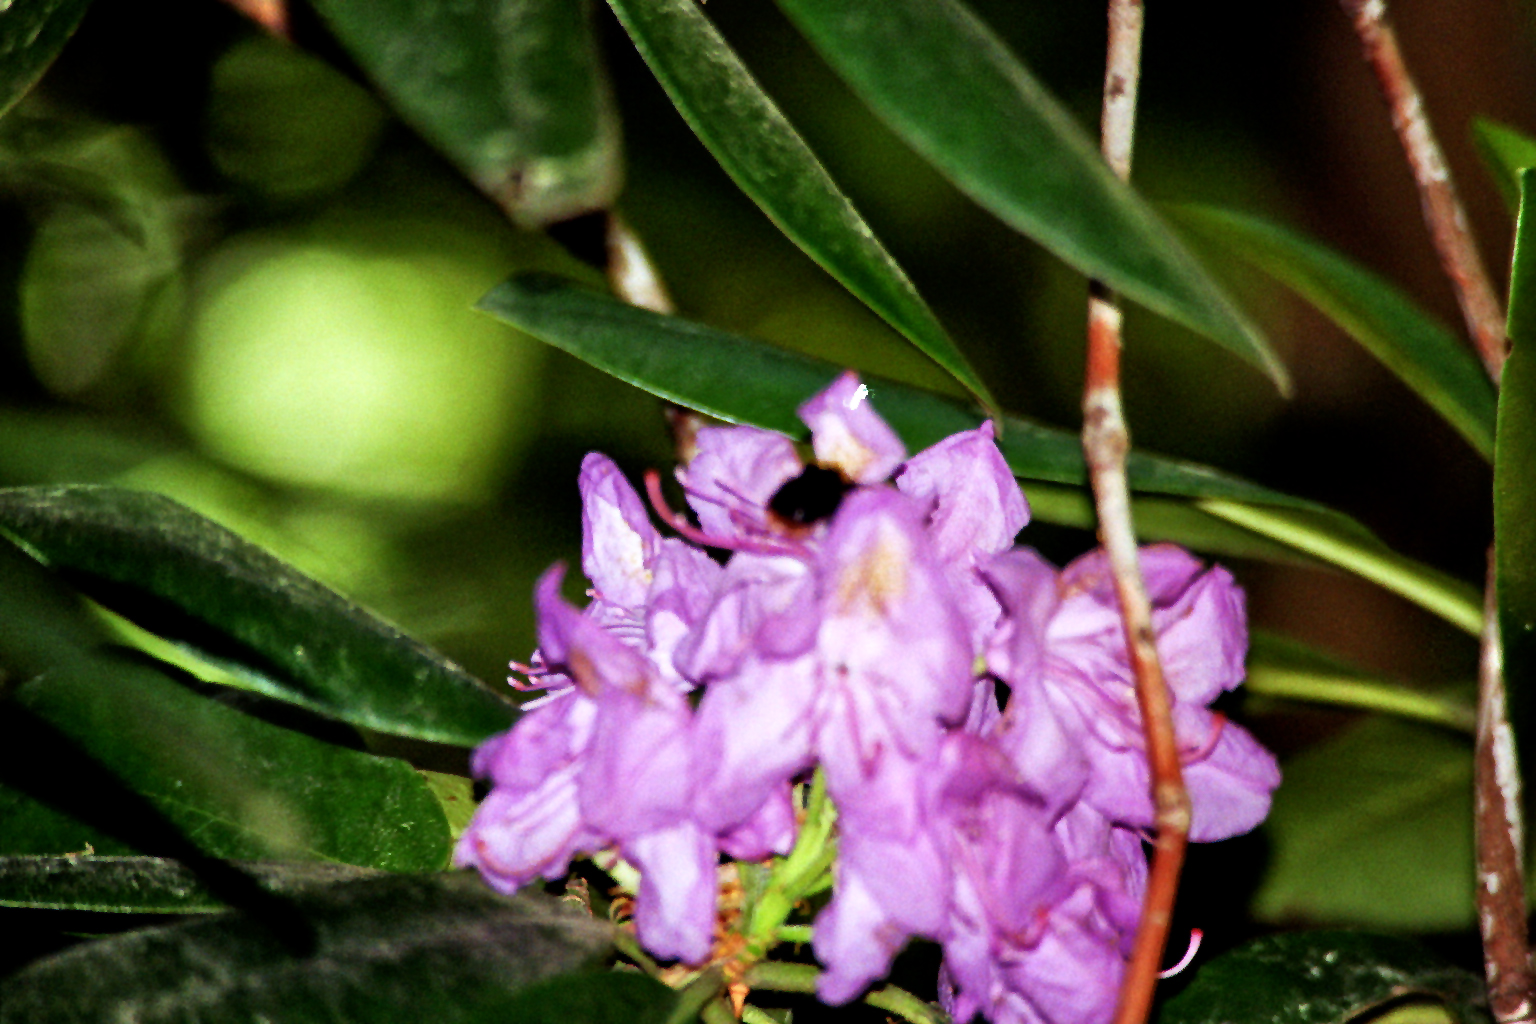 Rhododendron (Rhododendronhain Hasenheide)